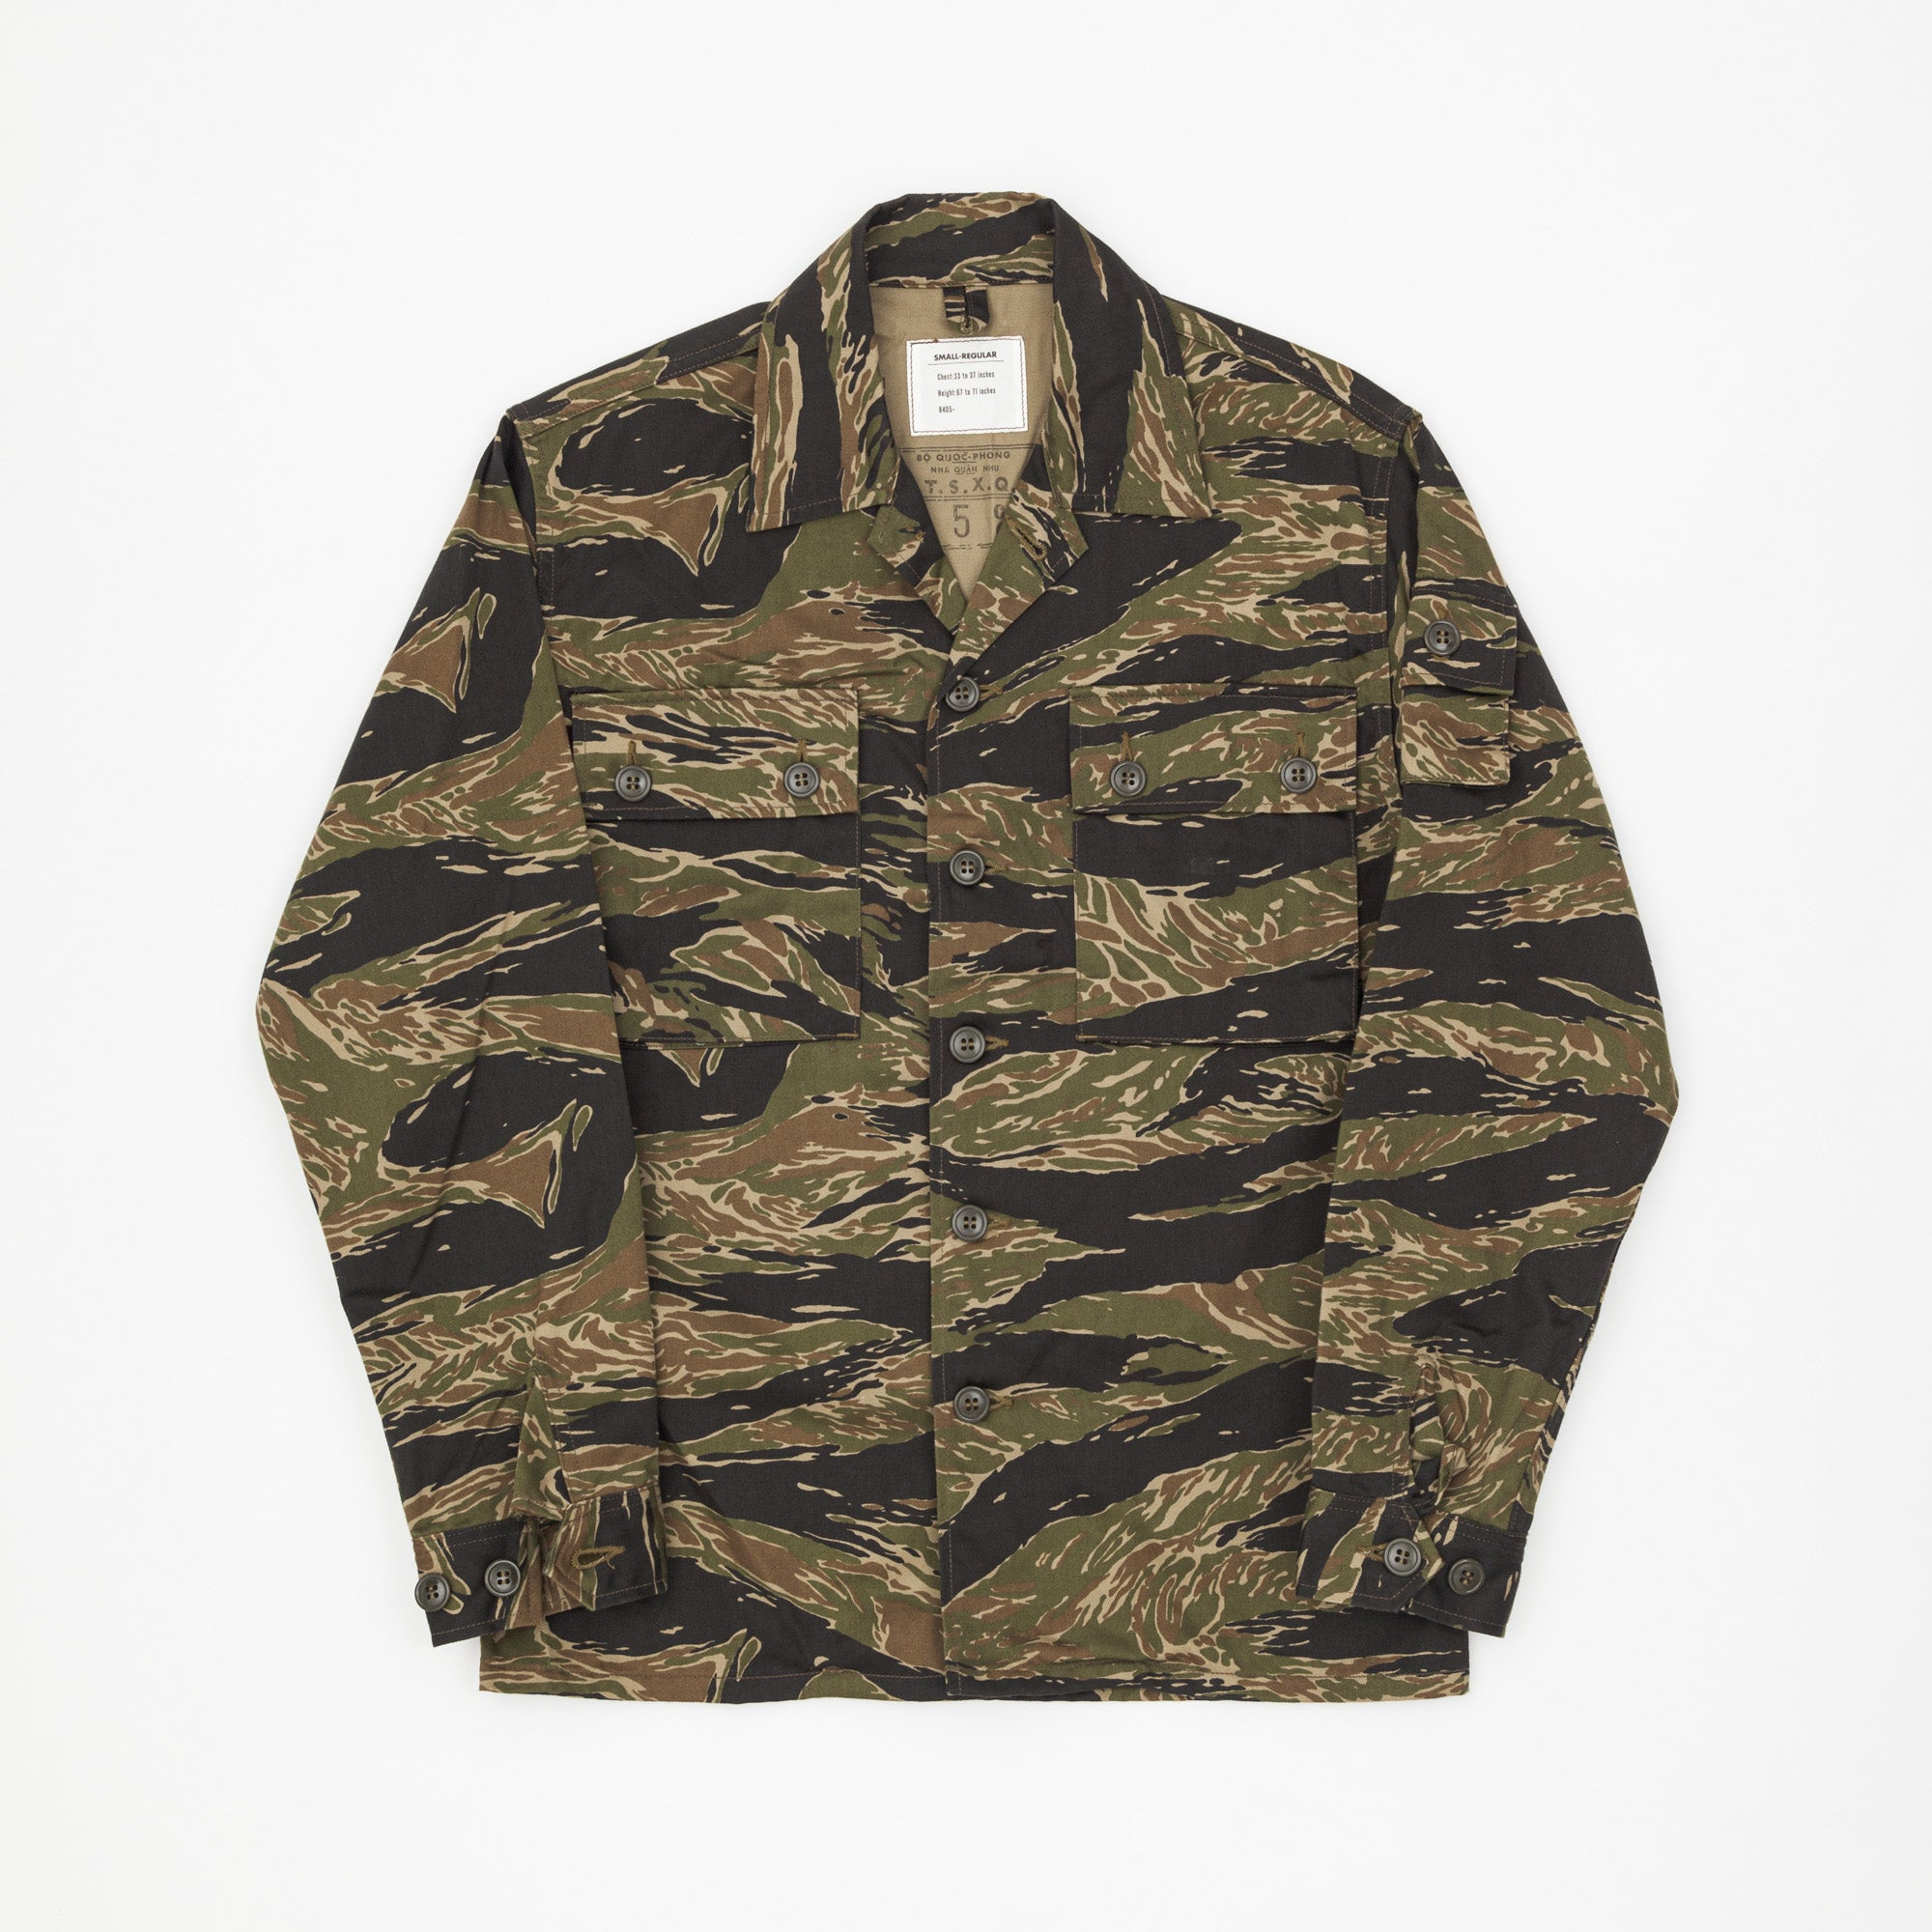 Tiger Camo / John Wayne Military Shirt